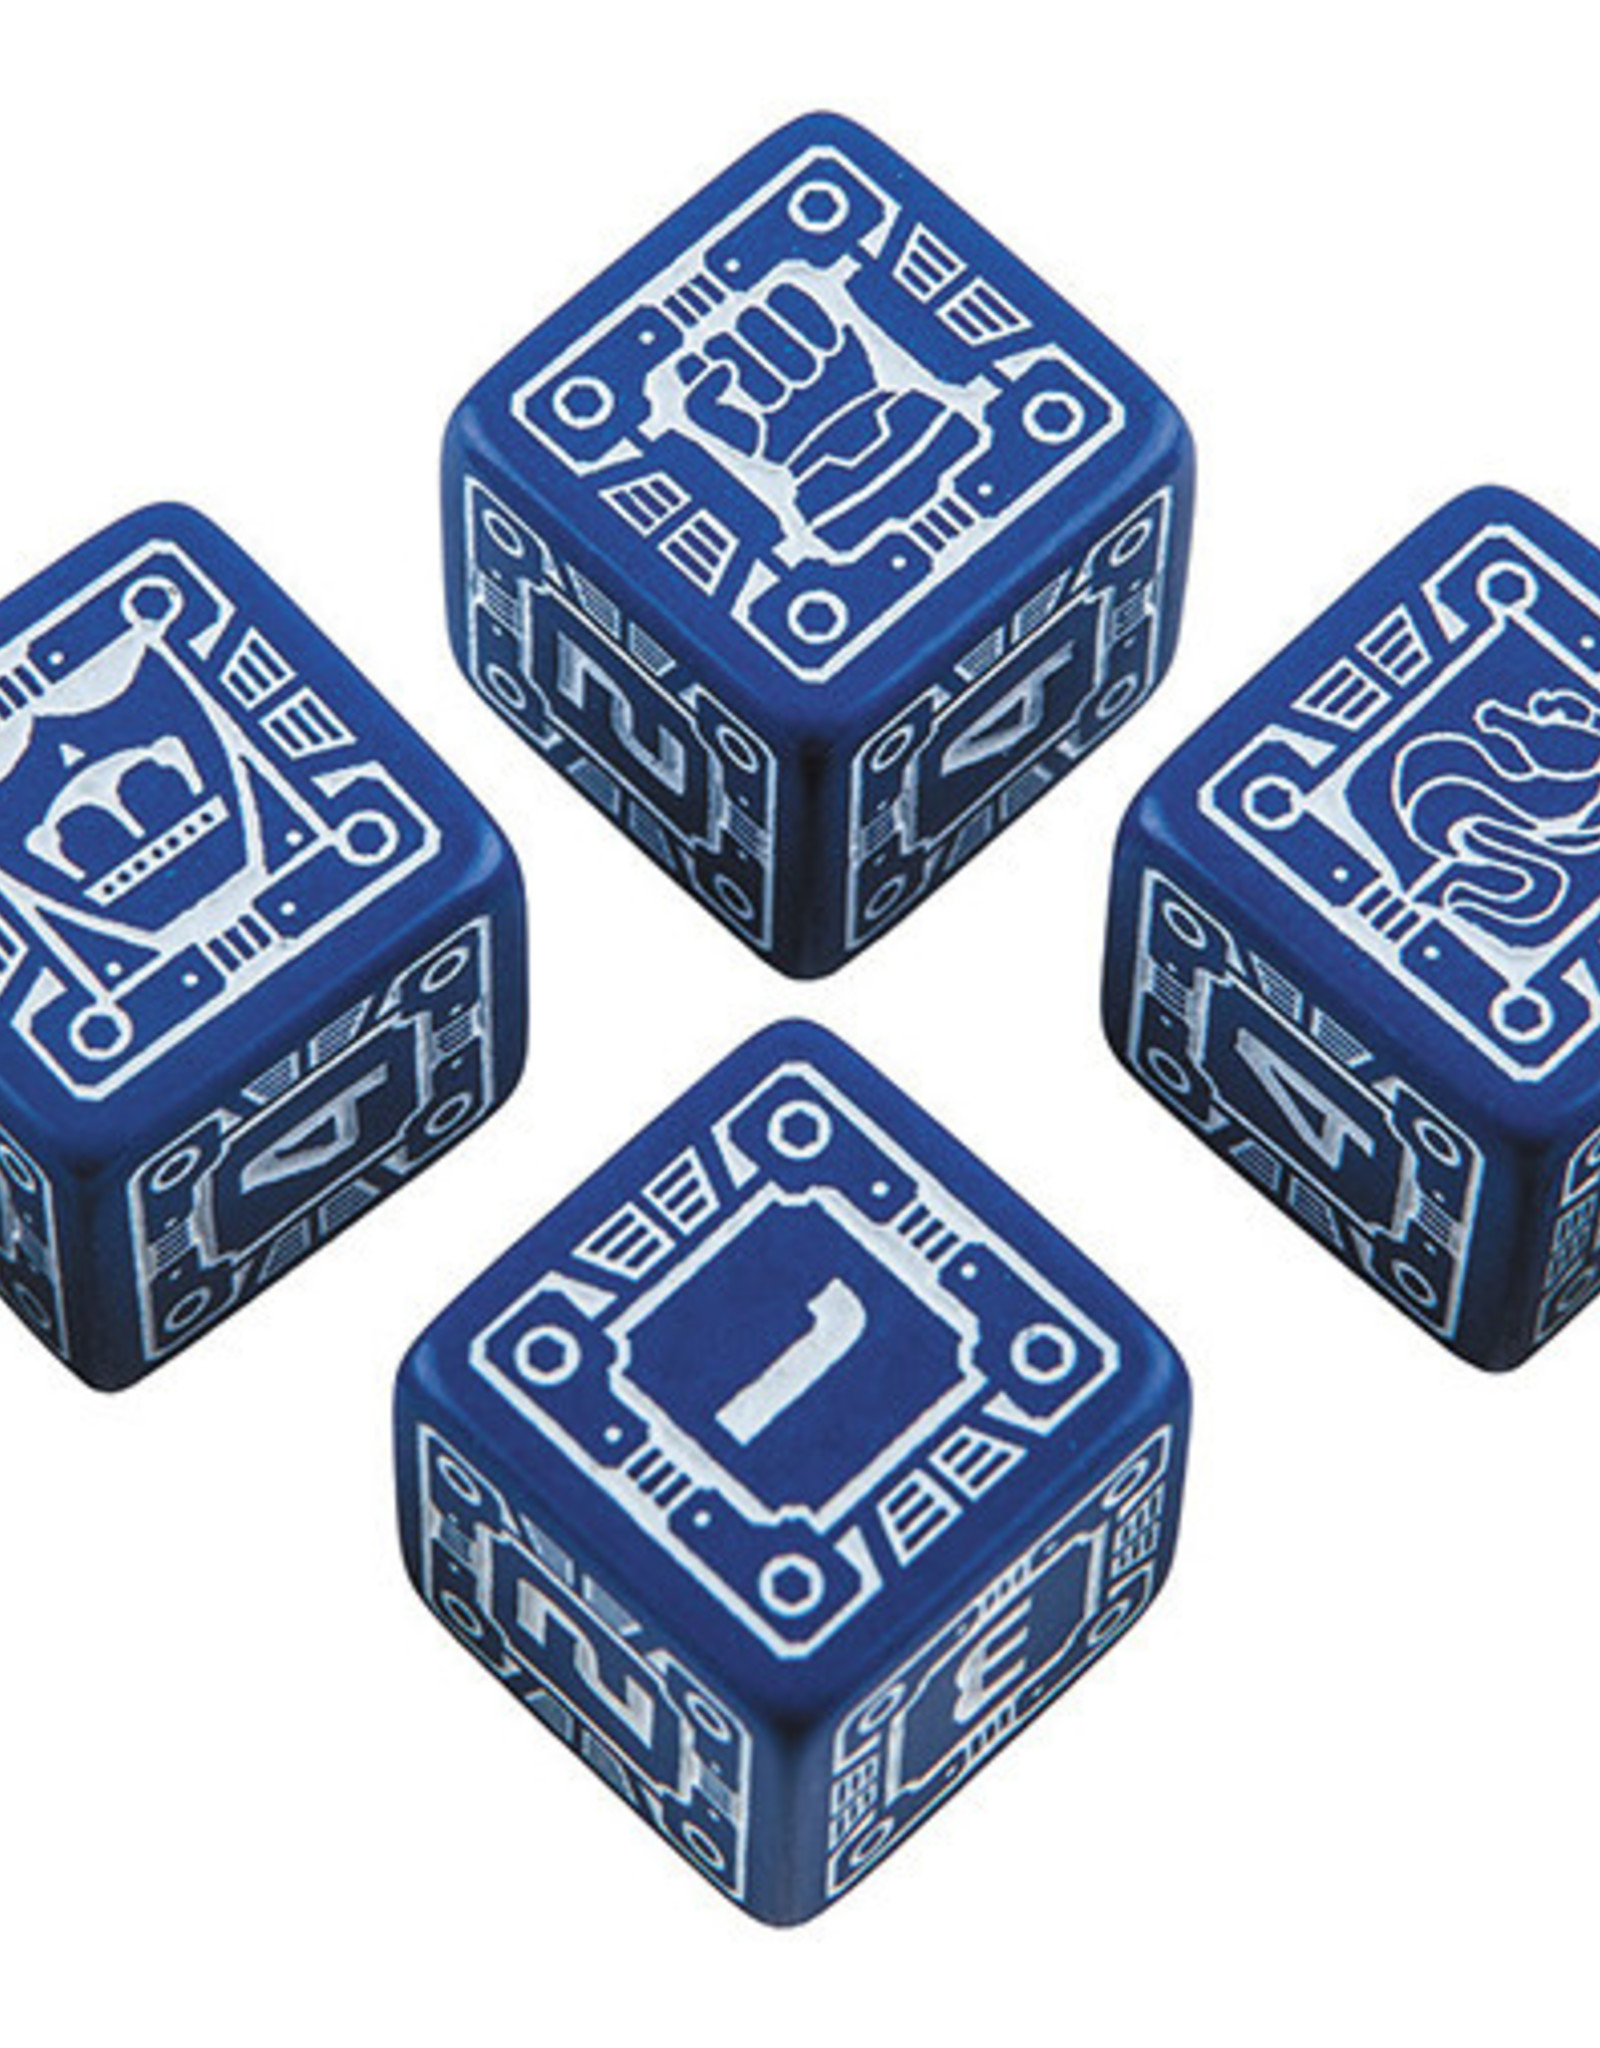 Q-Workshop Battletech House Steiner D6 Dice Set